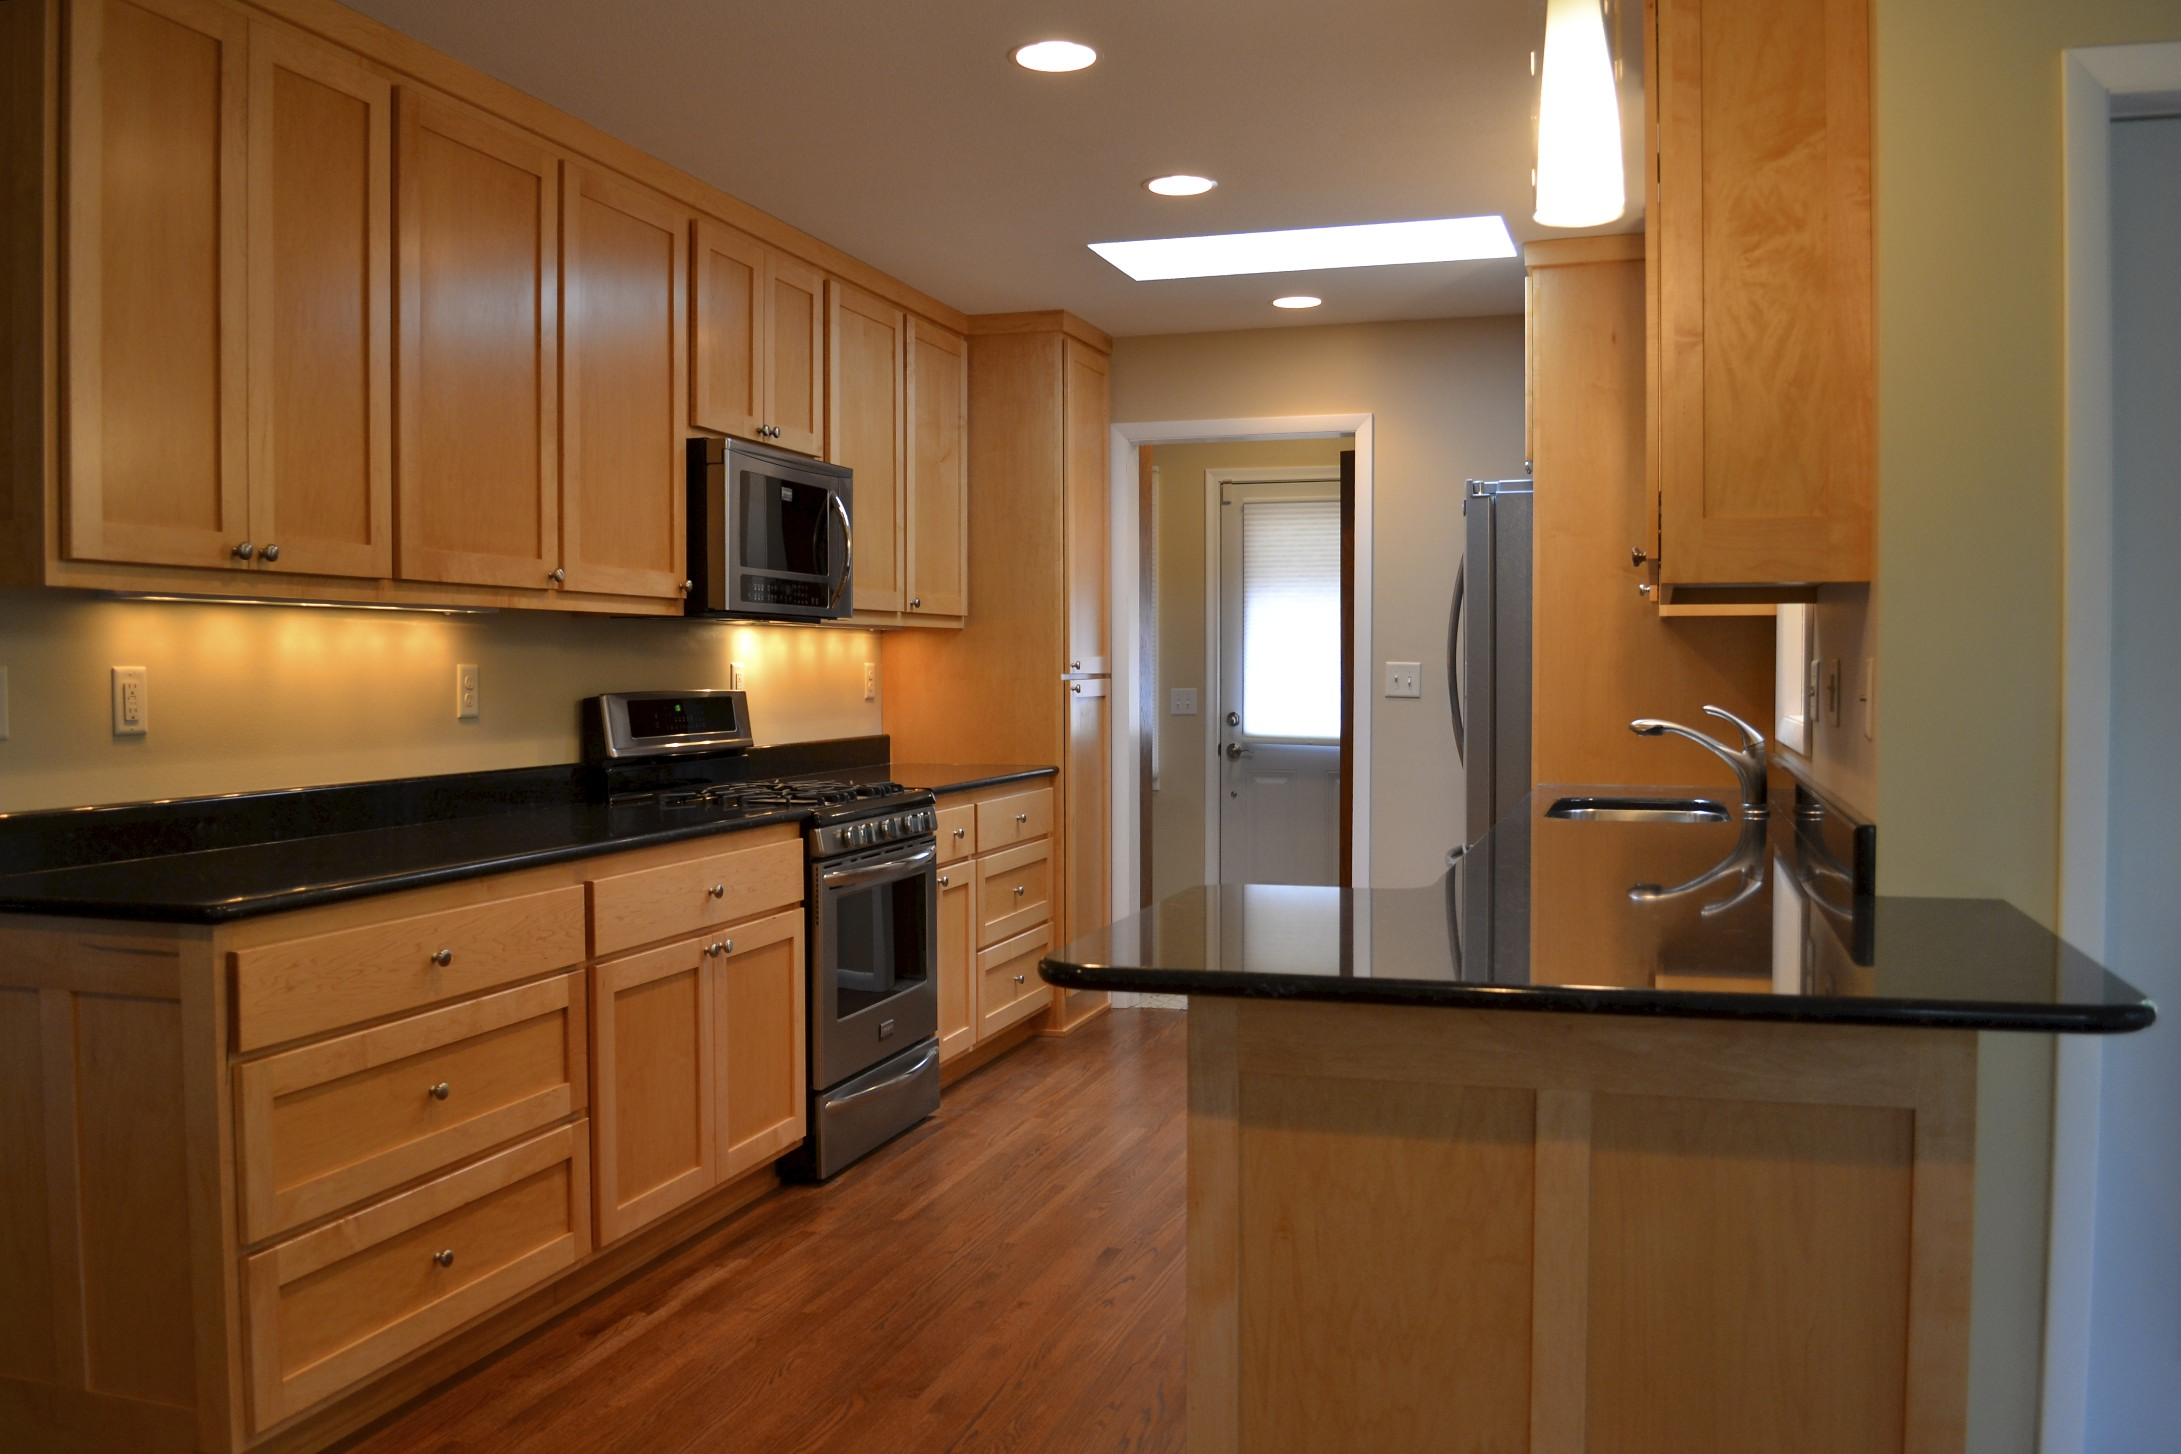 refined remodeling sarasota | custom installations and remodeling of